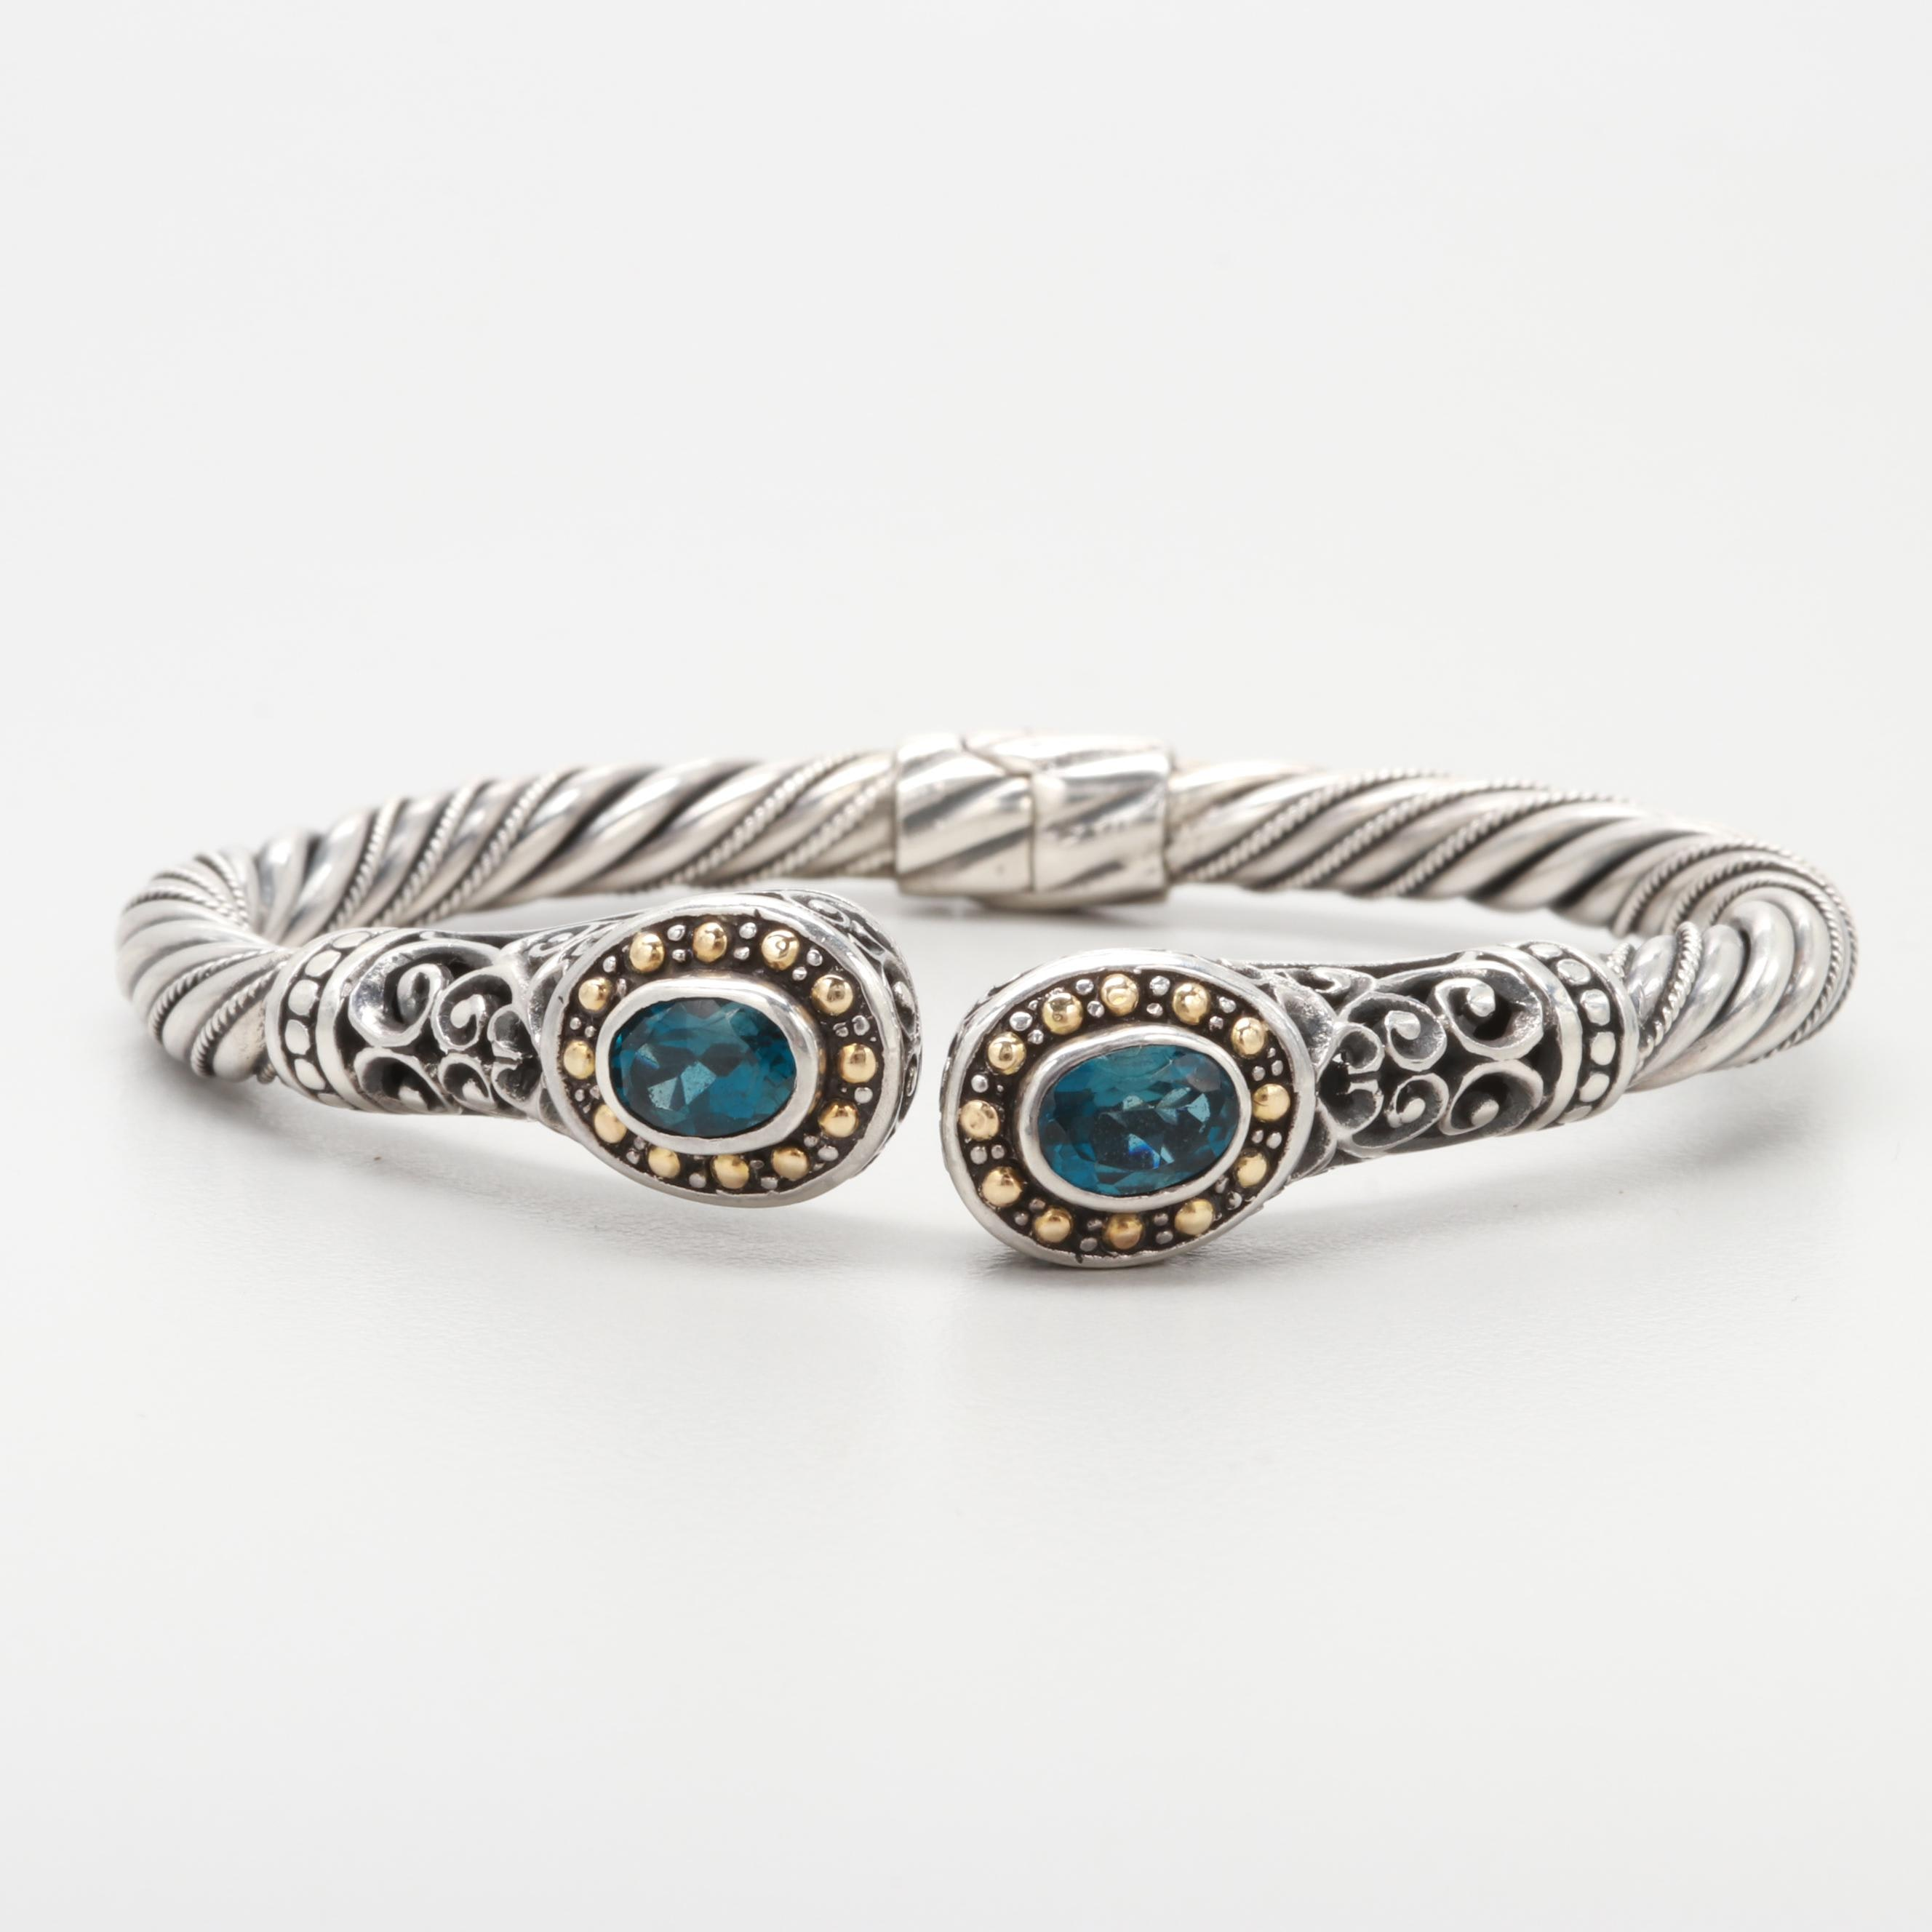 Robert Manse Sterling Silver Blue Topaz Bracelet With 18K Yellow Gold Accents